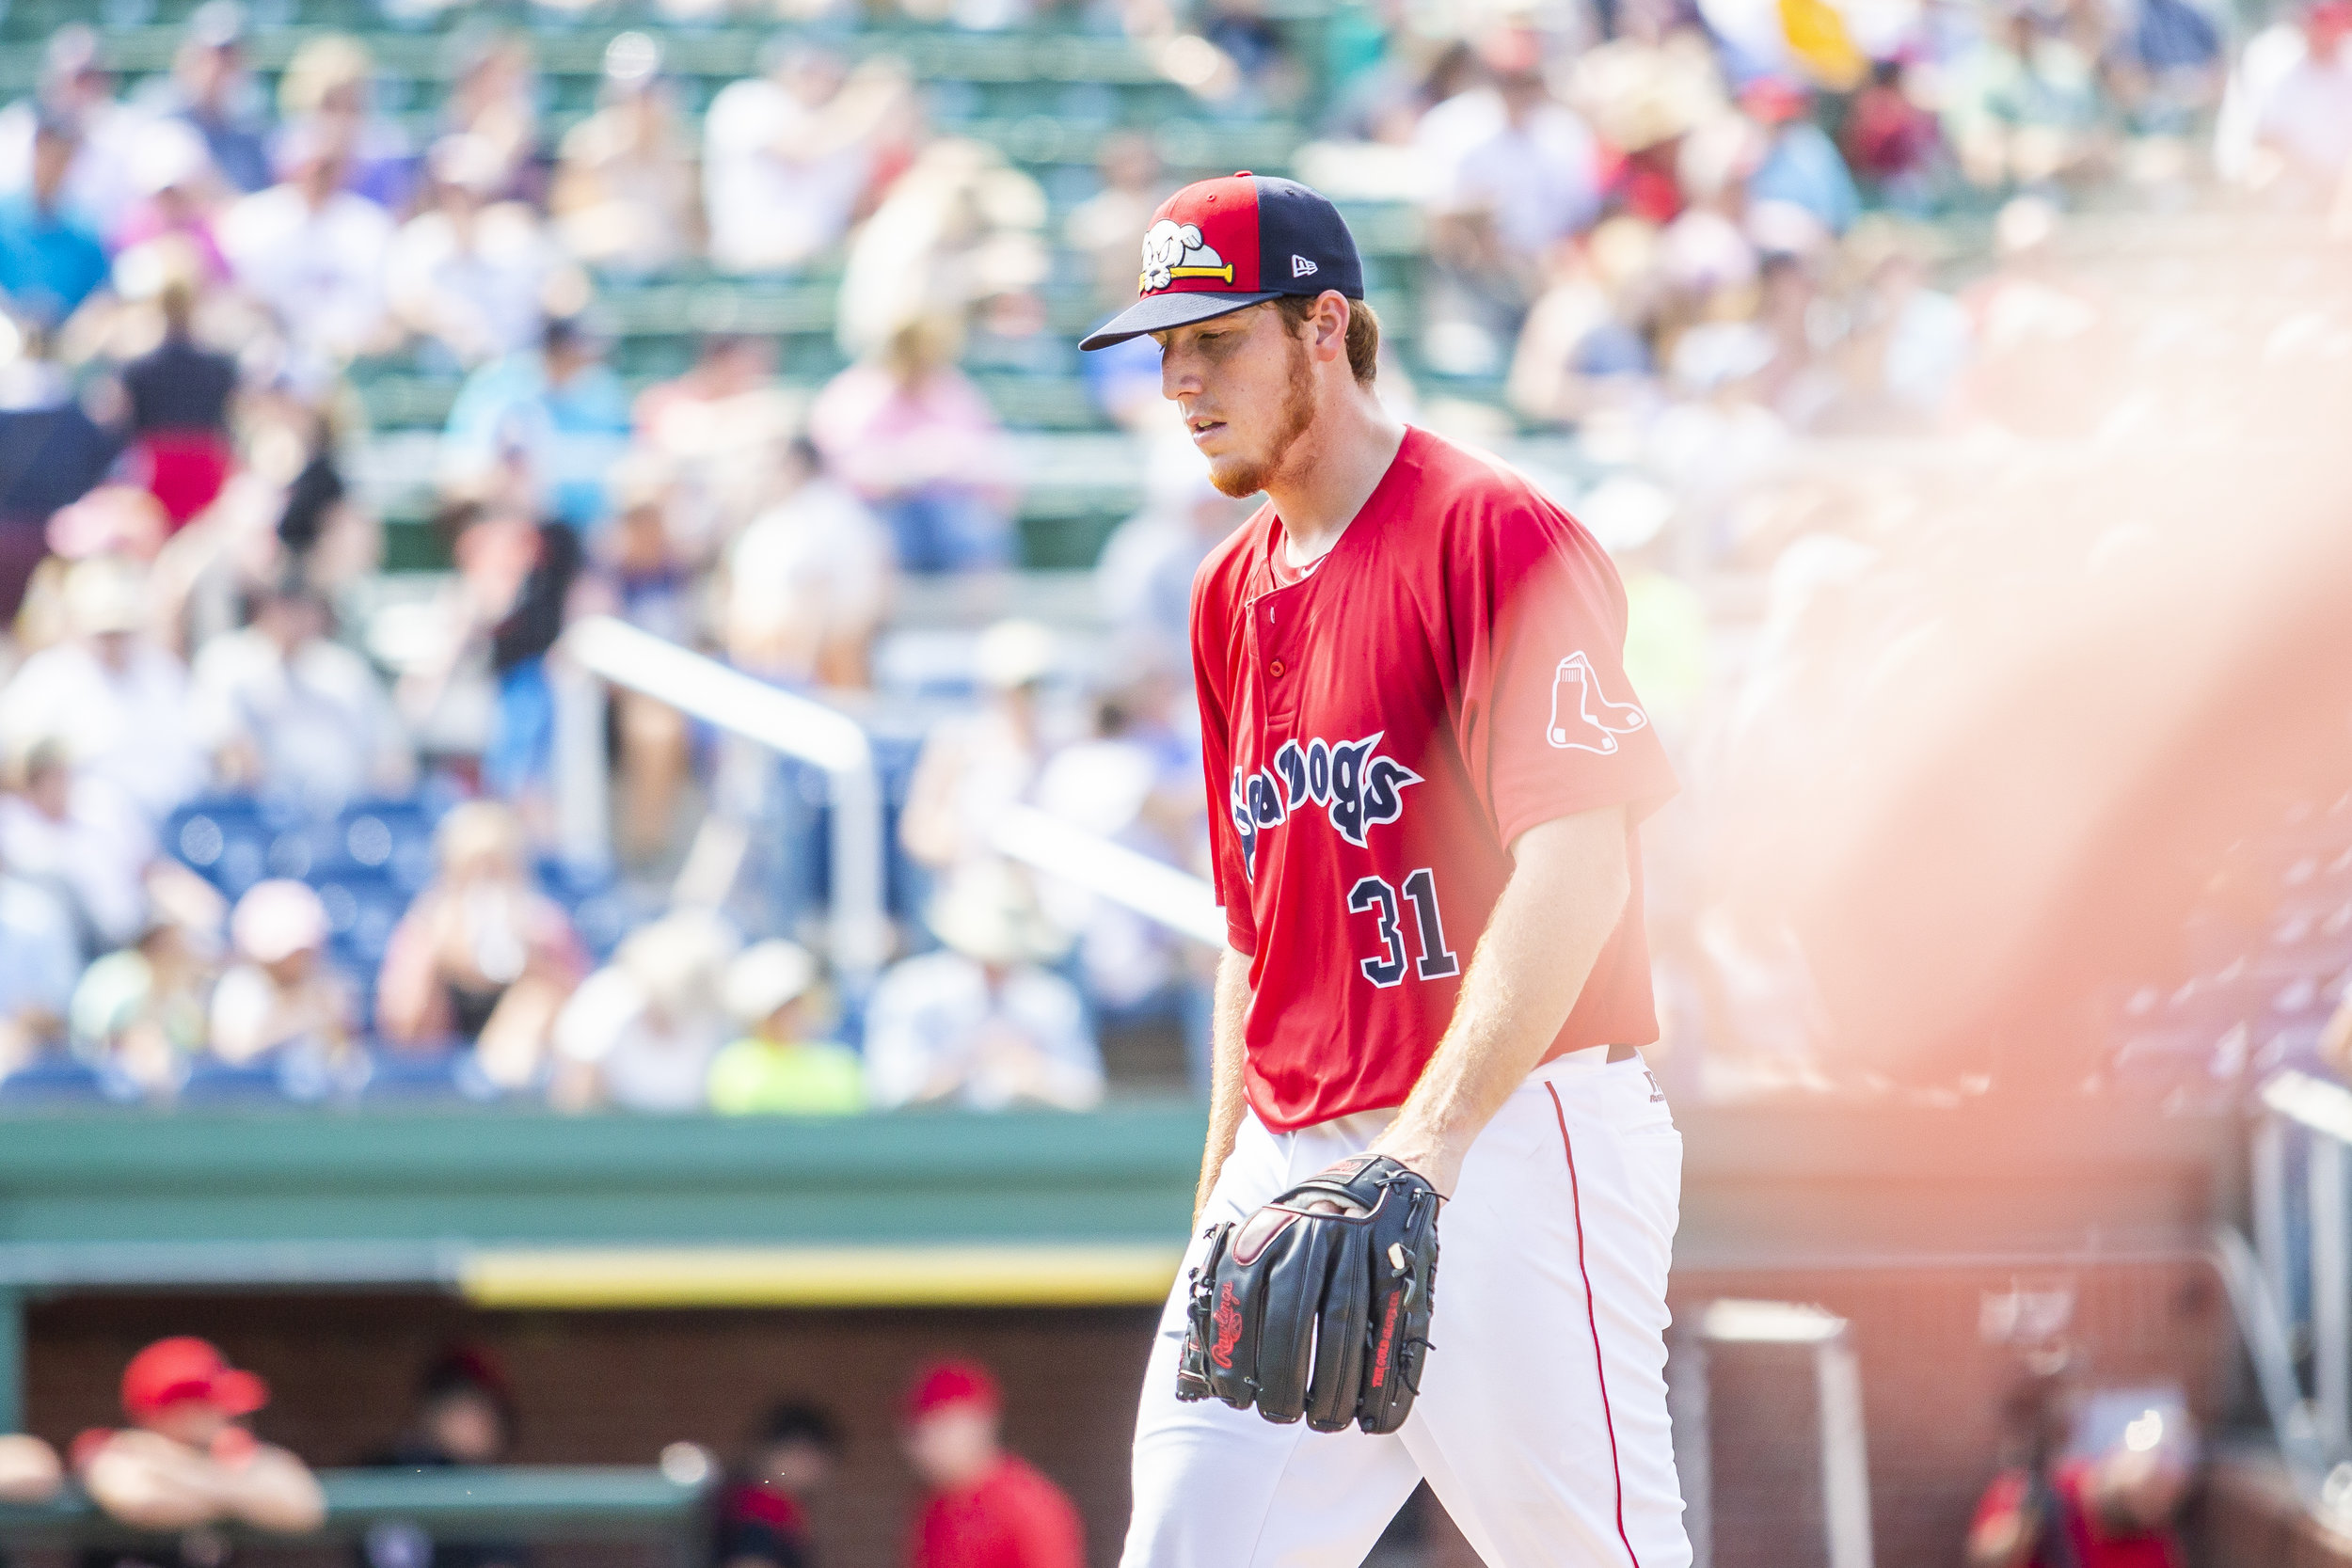 PORTLAND, ME - AUGUST 05:  Teddy Stankiewicz #31 of the Portland Sea Dogs returns to the dugout at the end of the sixth inning in a game against the Richmond Flying Squirrels on August 5, 2018 in Portland, ME at Hadlock Field . (Photo by Zachary Roy/Getty Images)